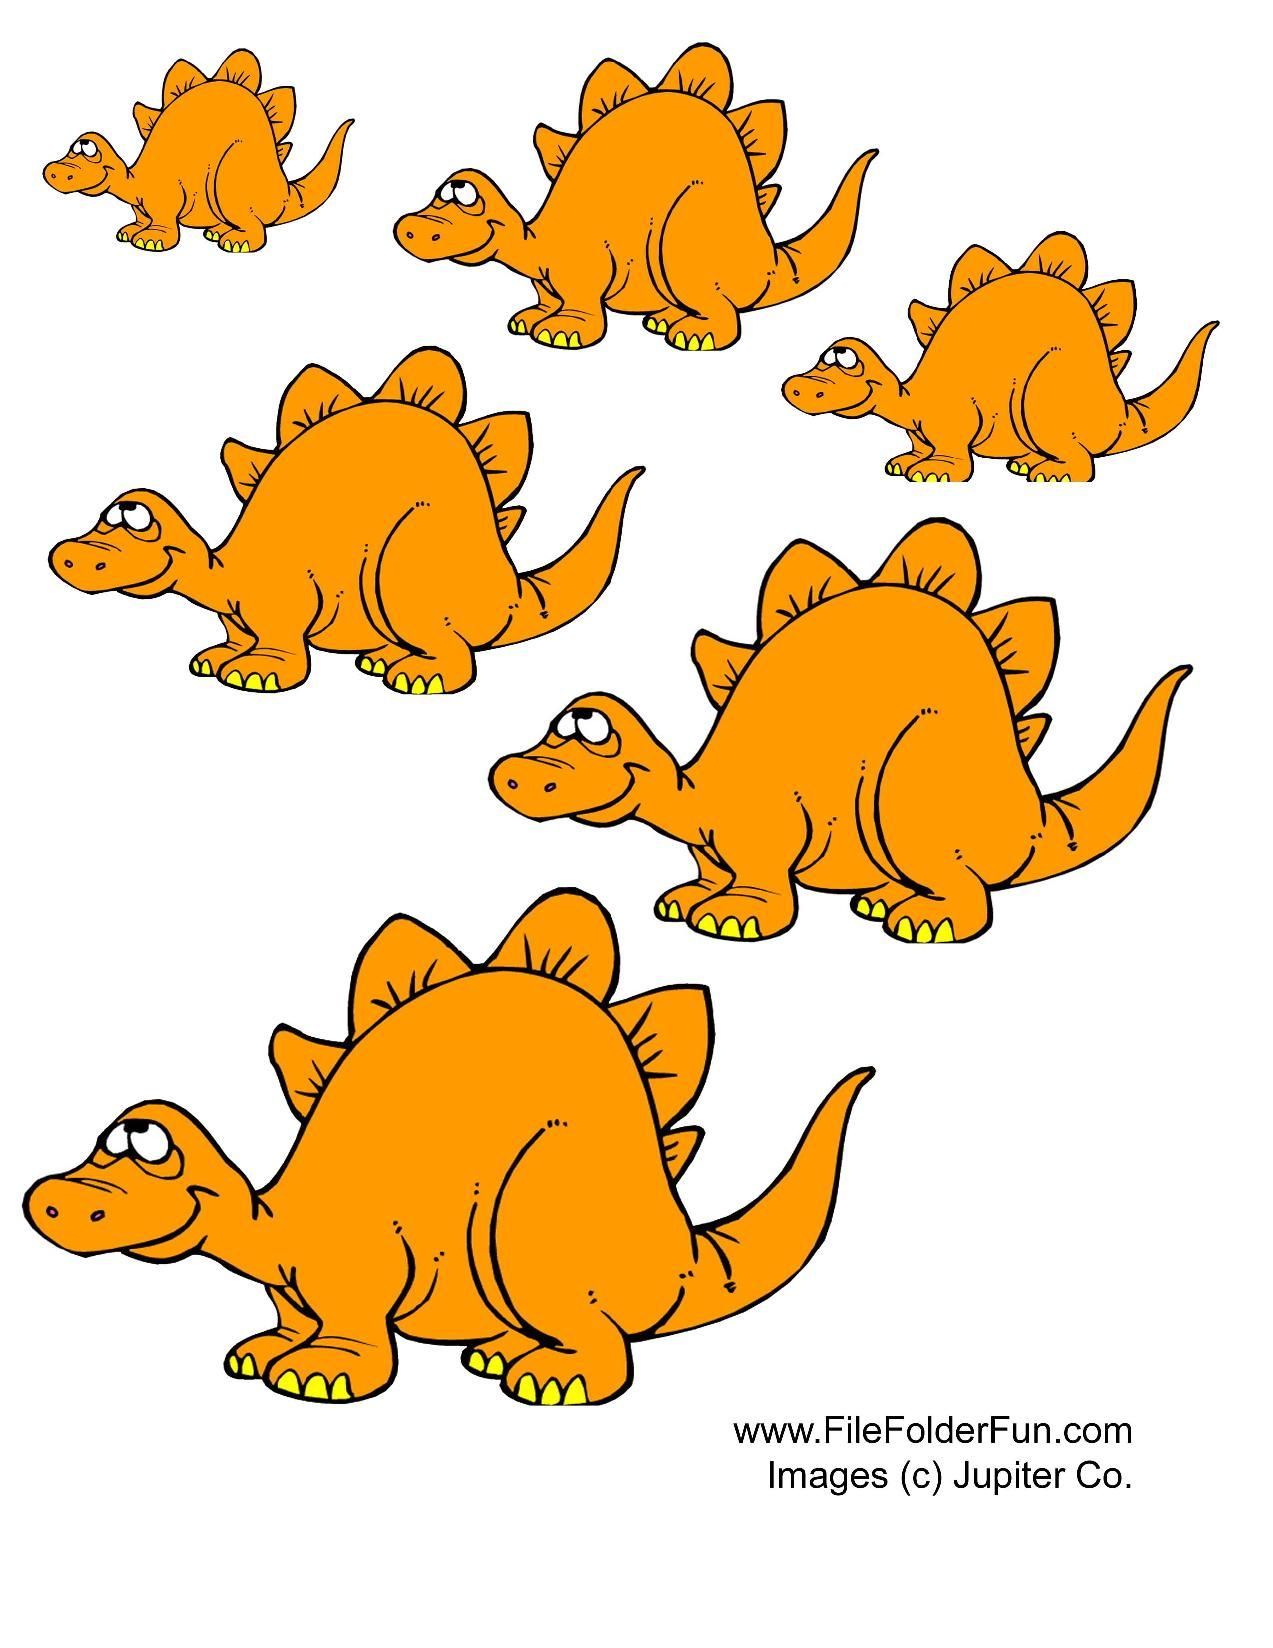 Dino Size It Game Have Your Child Put The Dinosaurs In Order According To Size Image Dinosaure Dinosaure Projets De Dinosaures